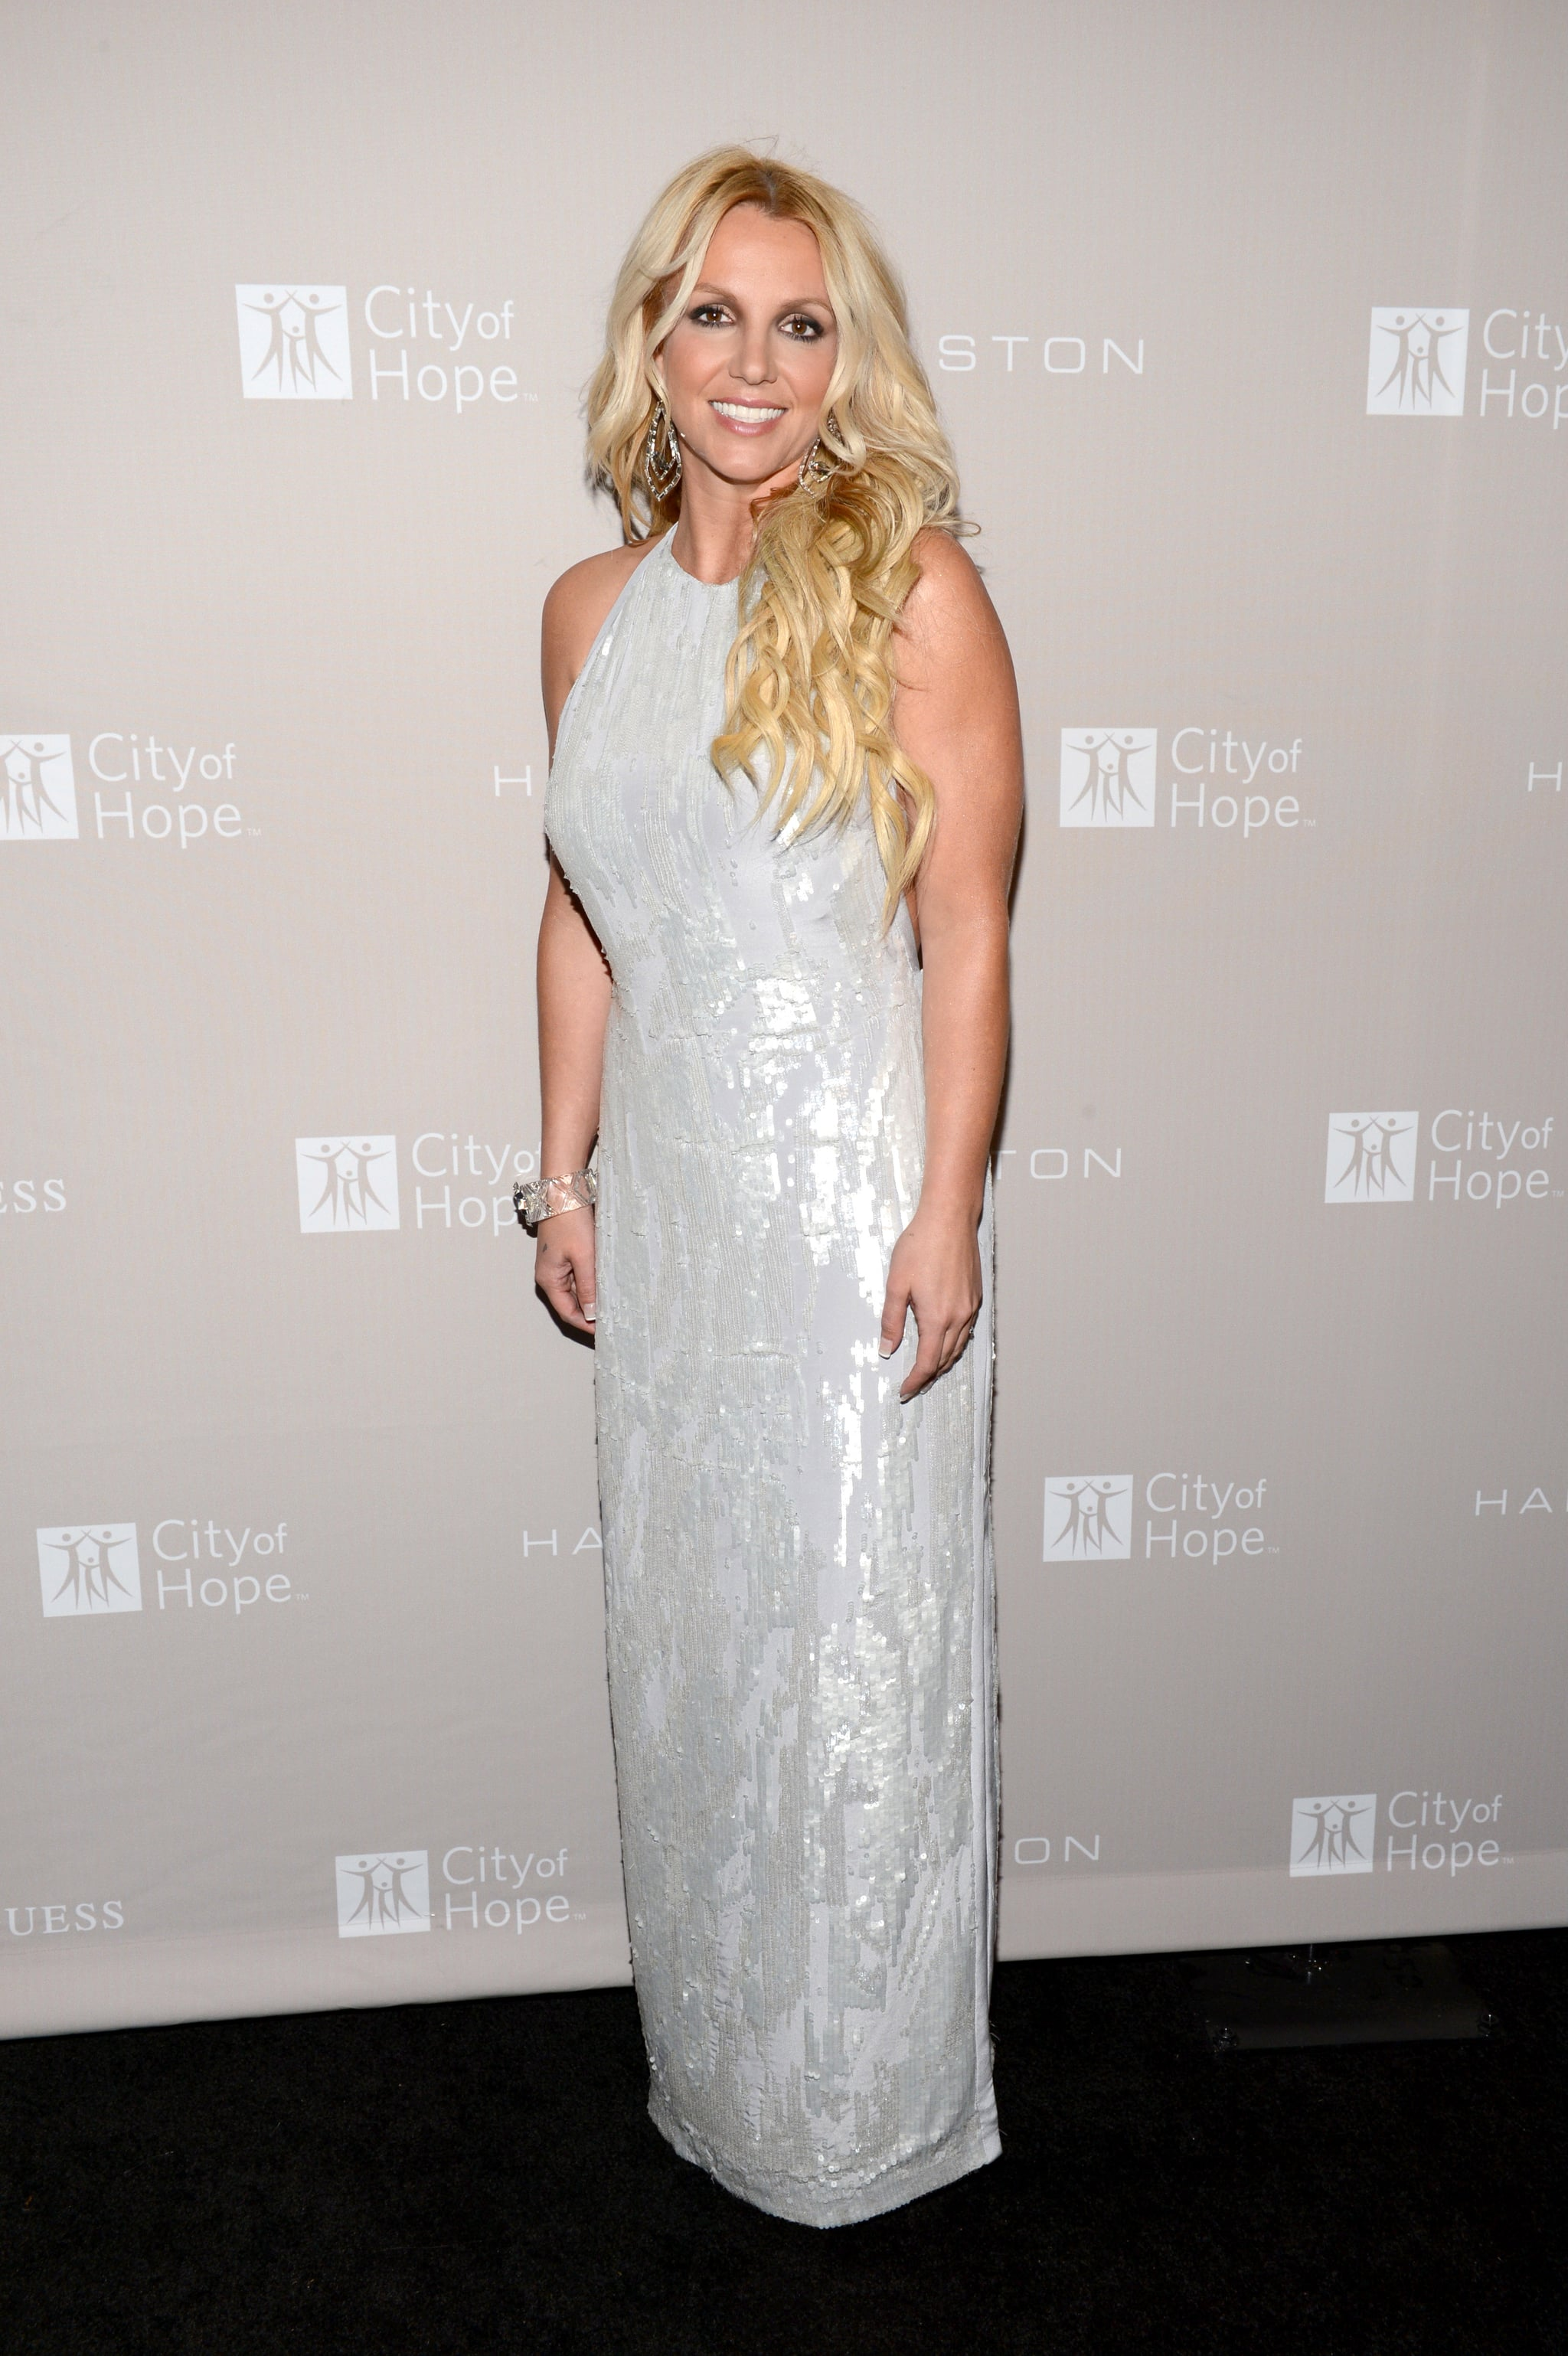 Britney Spears stepped out for the gala in LA.